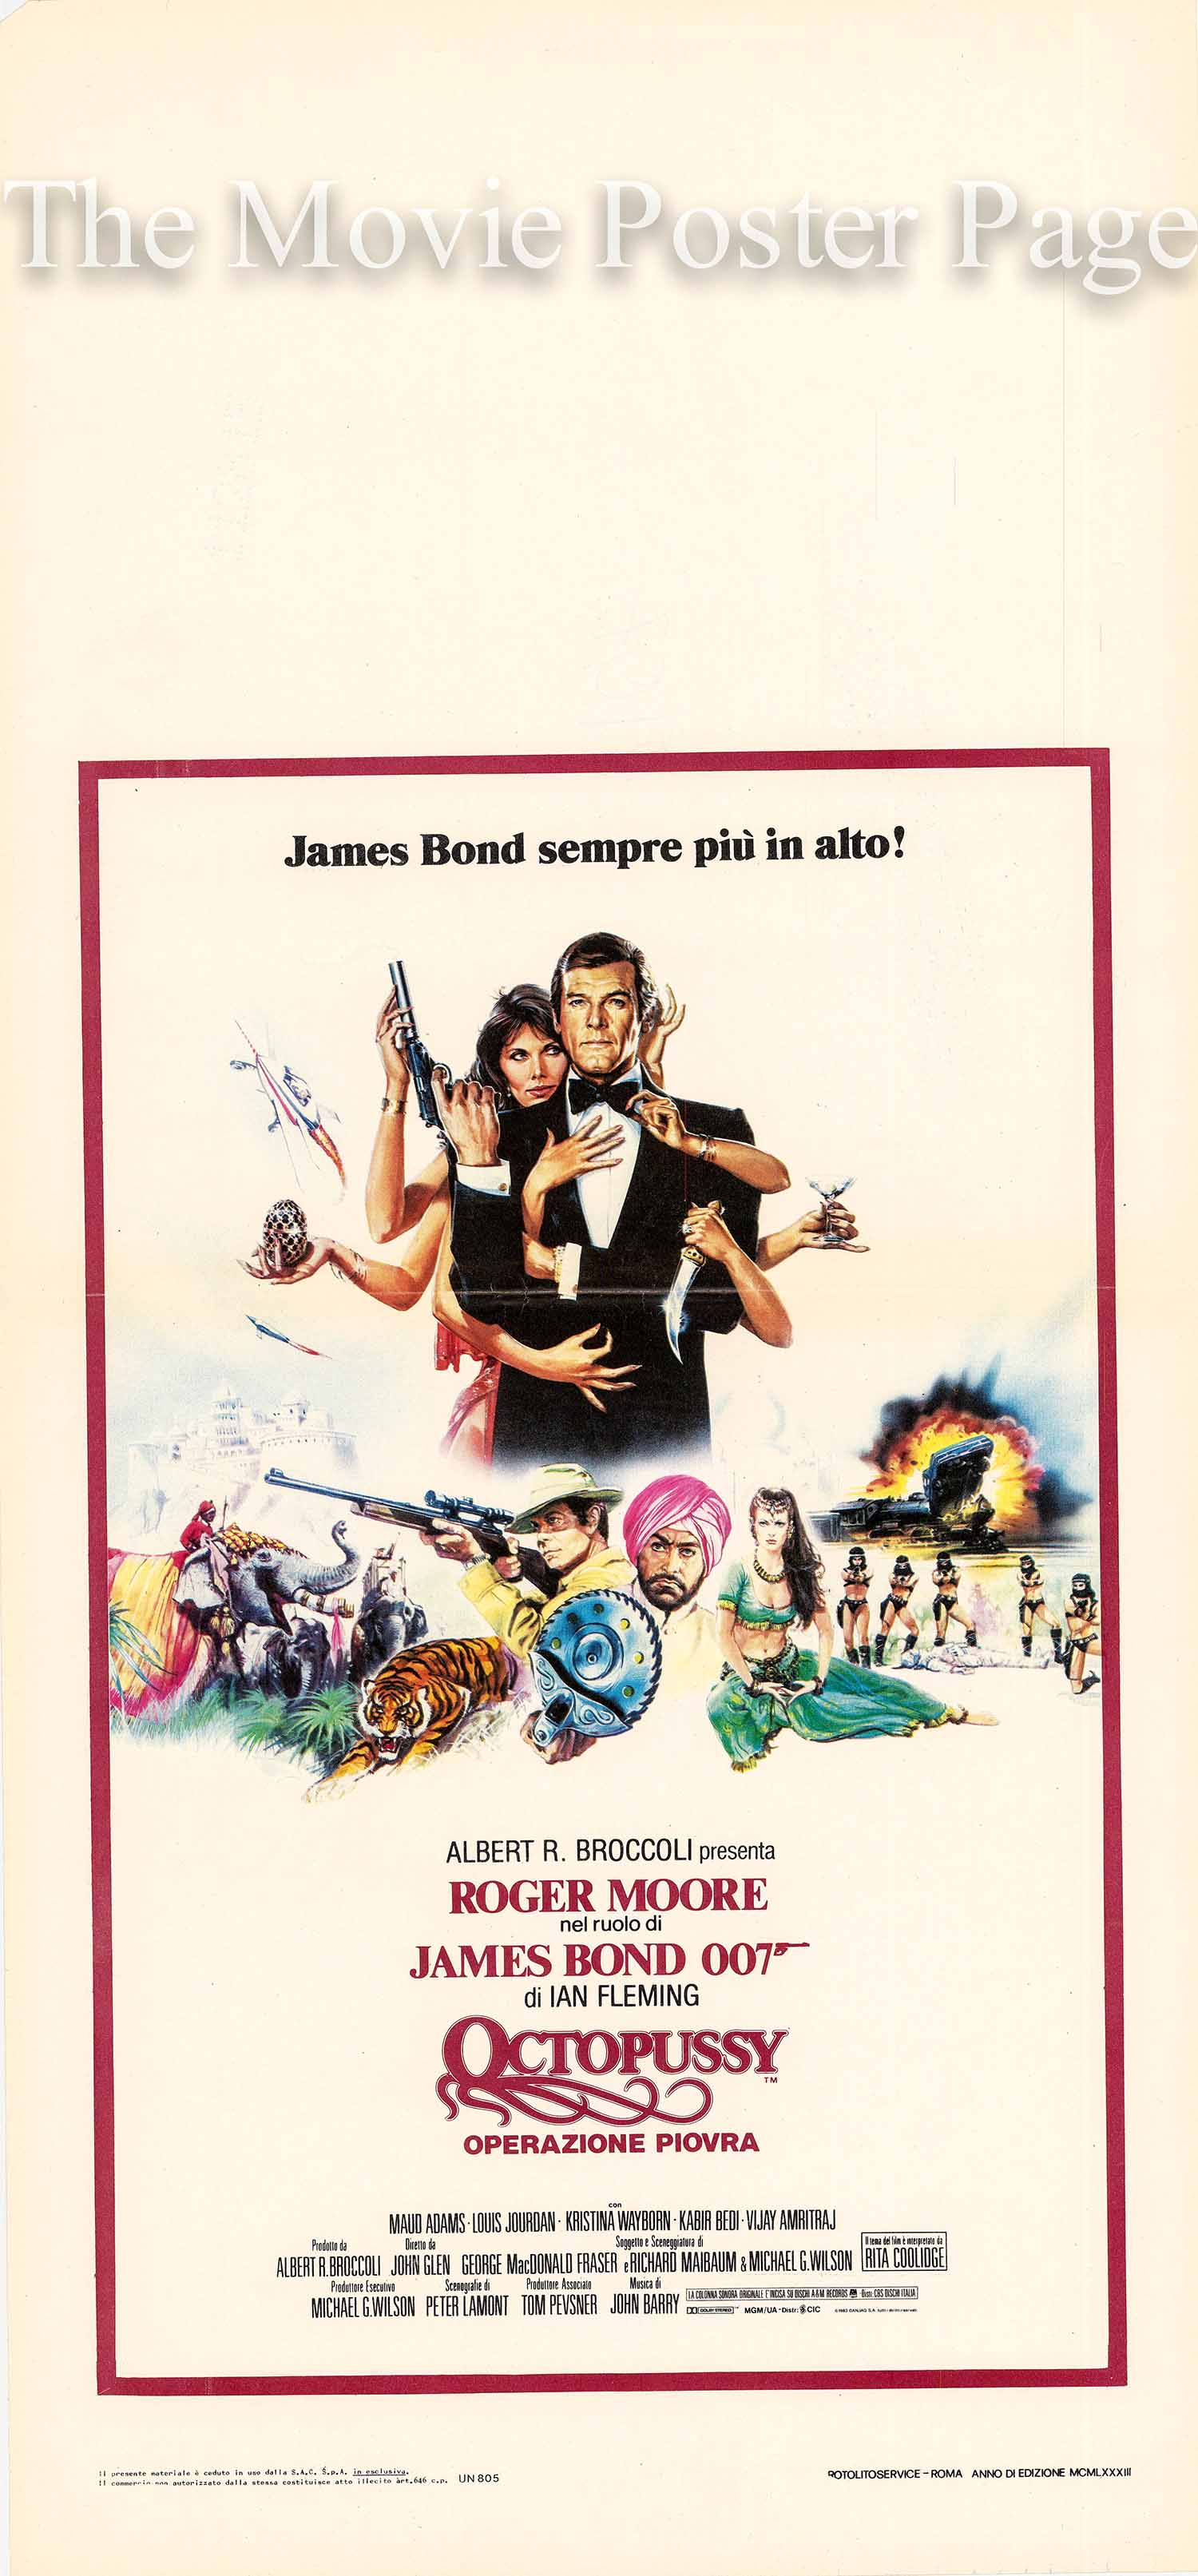 Pictured is a 14x28 Italian Locandina for the 1983 John Glen film Octopussy starring Roger Moore as James Bond.